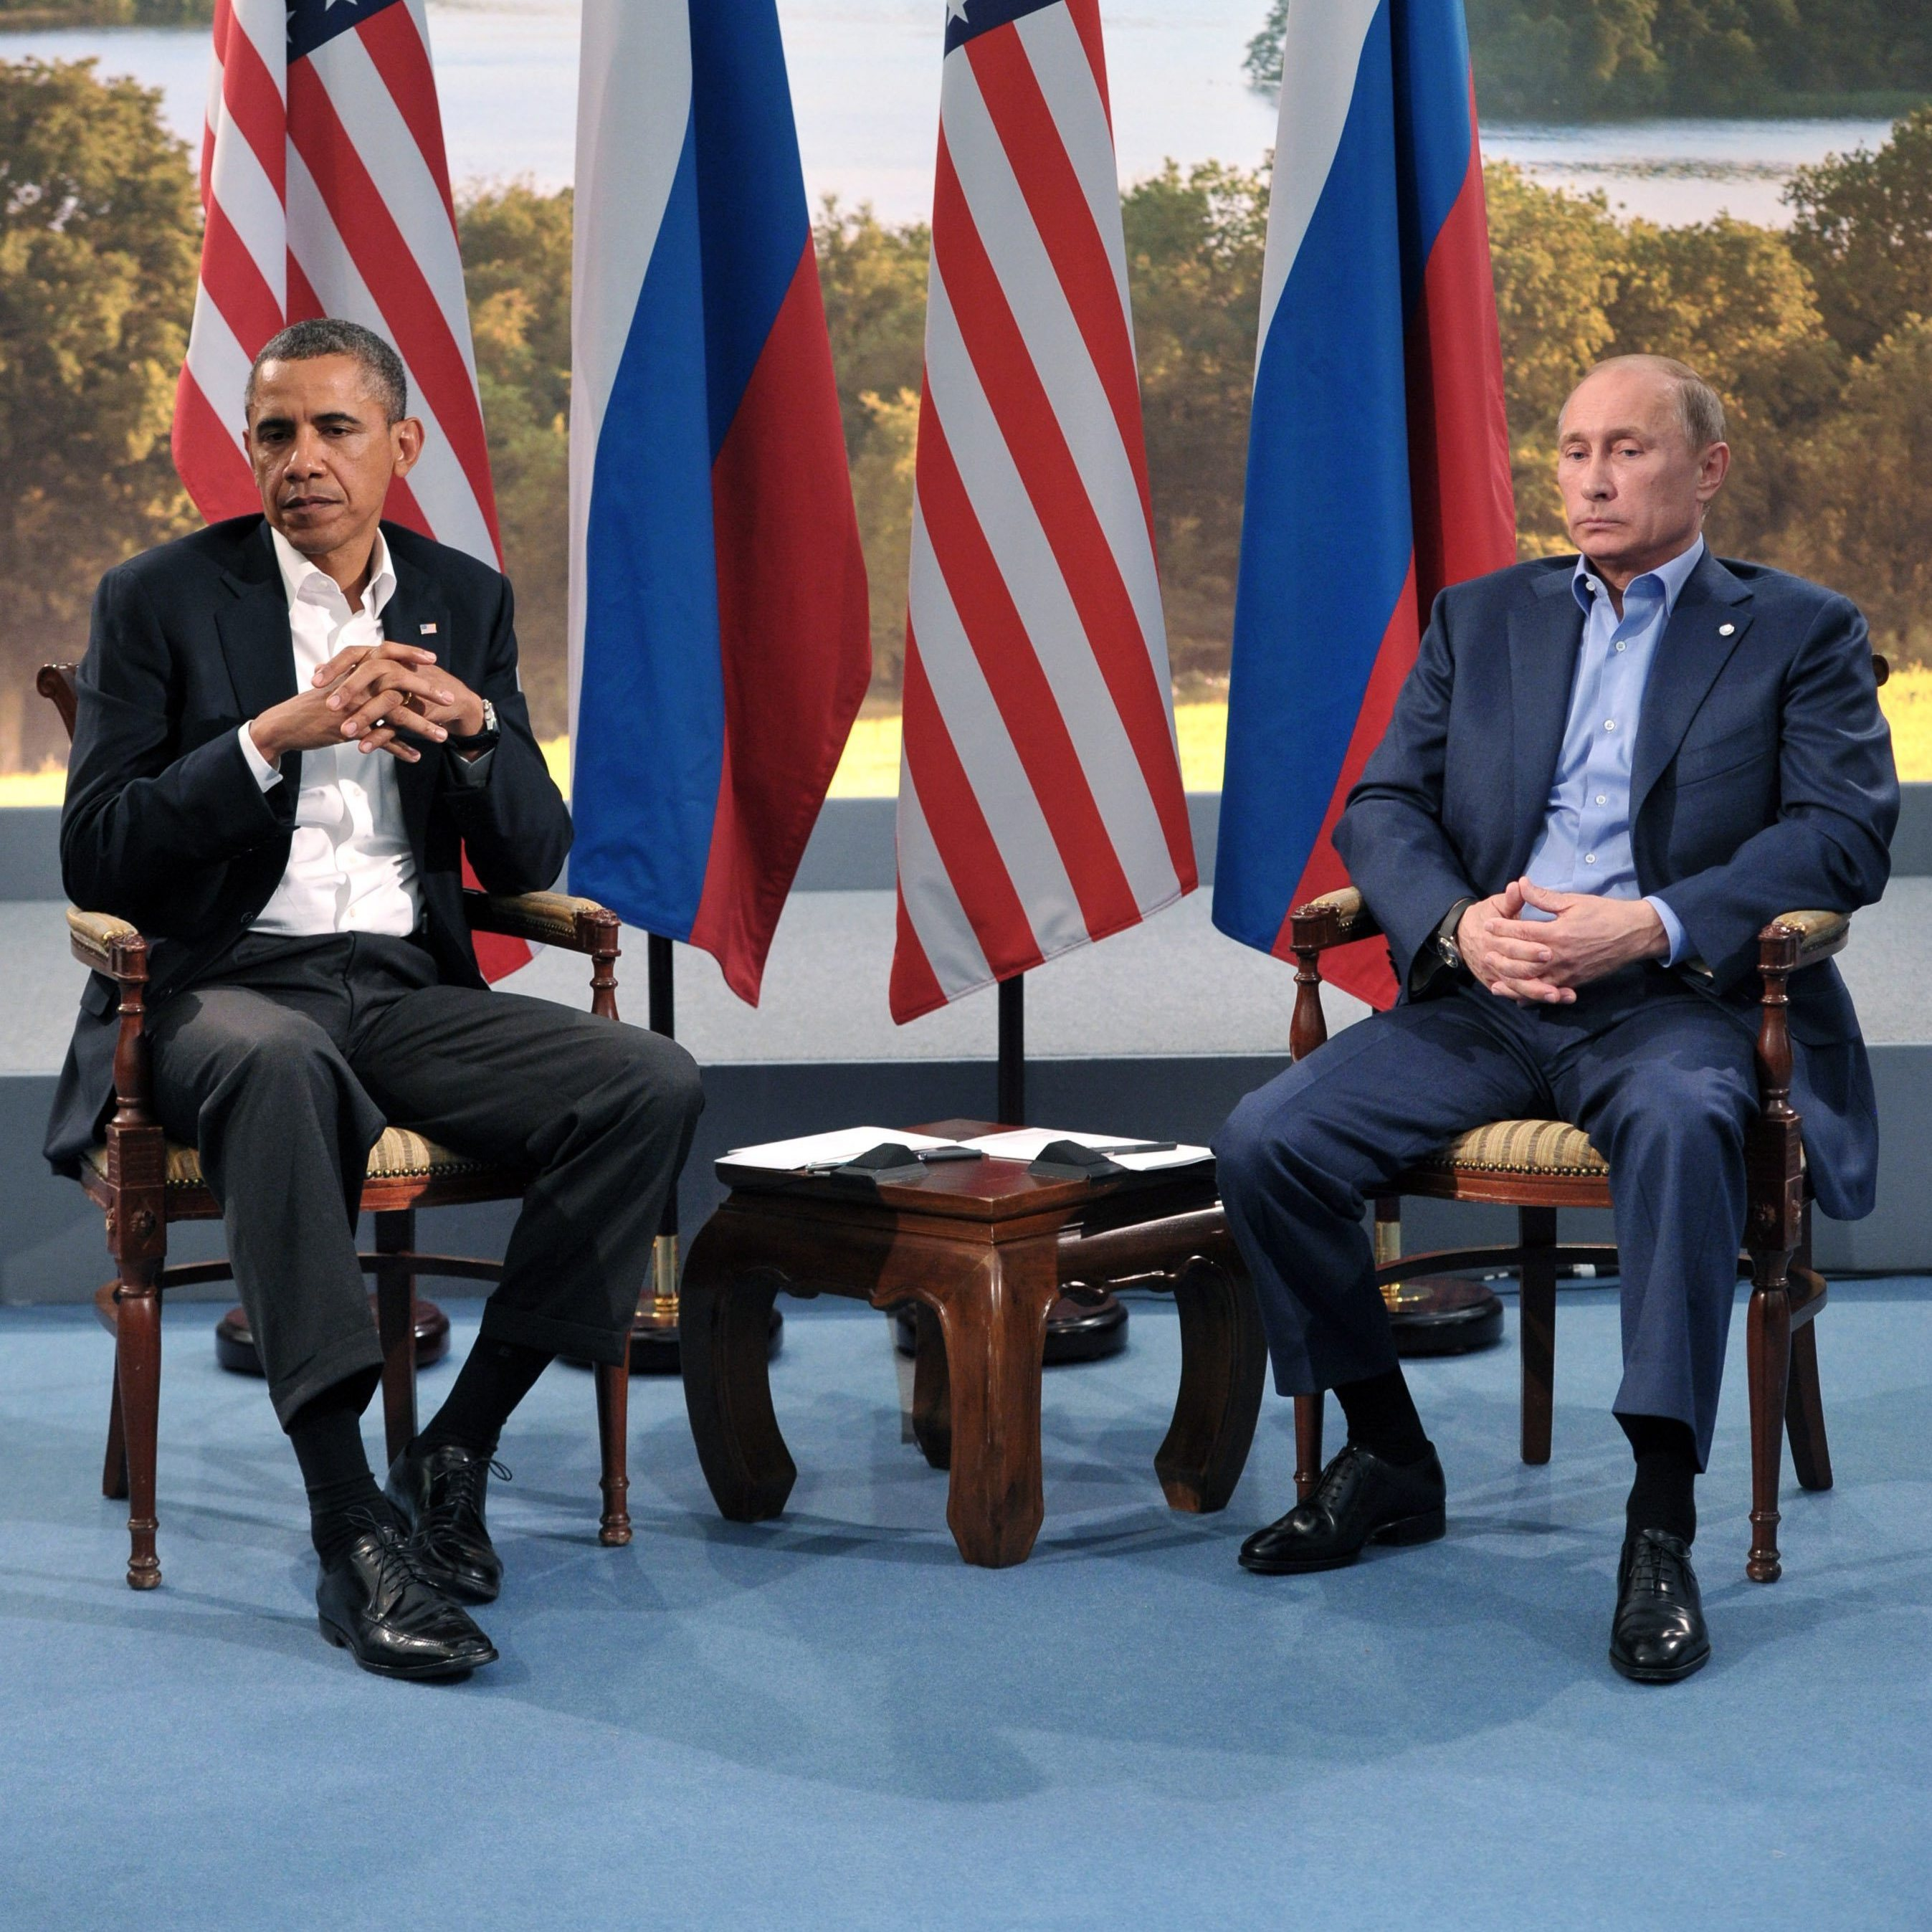 At June's G-8 Summit in Northern Ireland, Russian President Vladimir Putin and President Obama sat for some awkward photos. In St. Petersburg, they'll be several seats apart during the formal discussions.